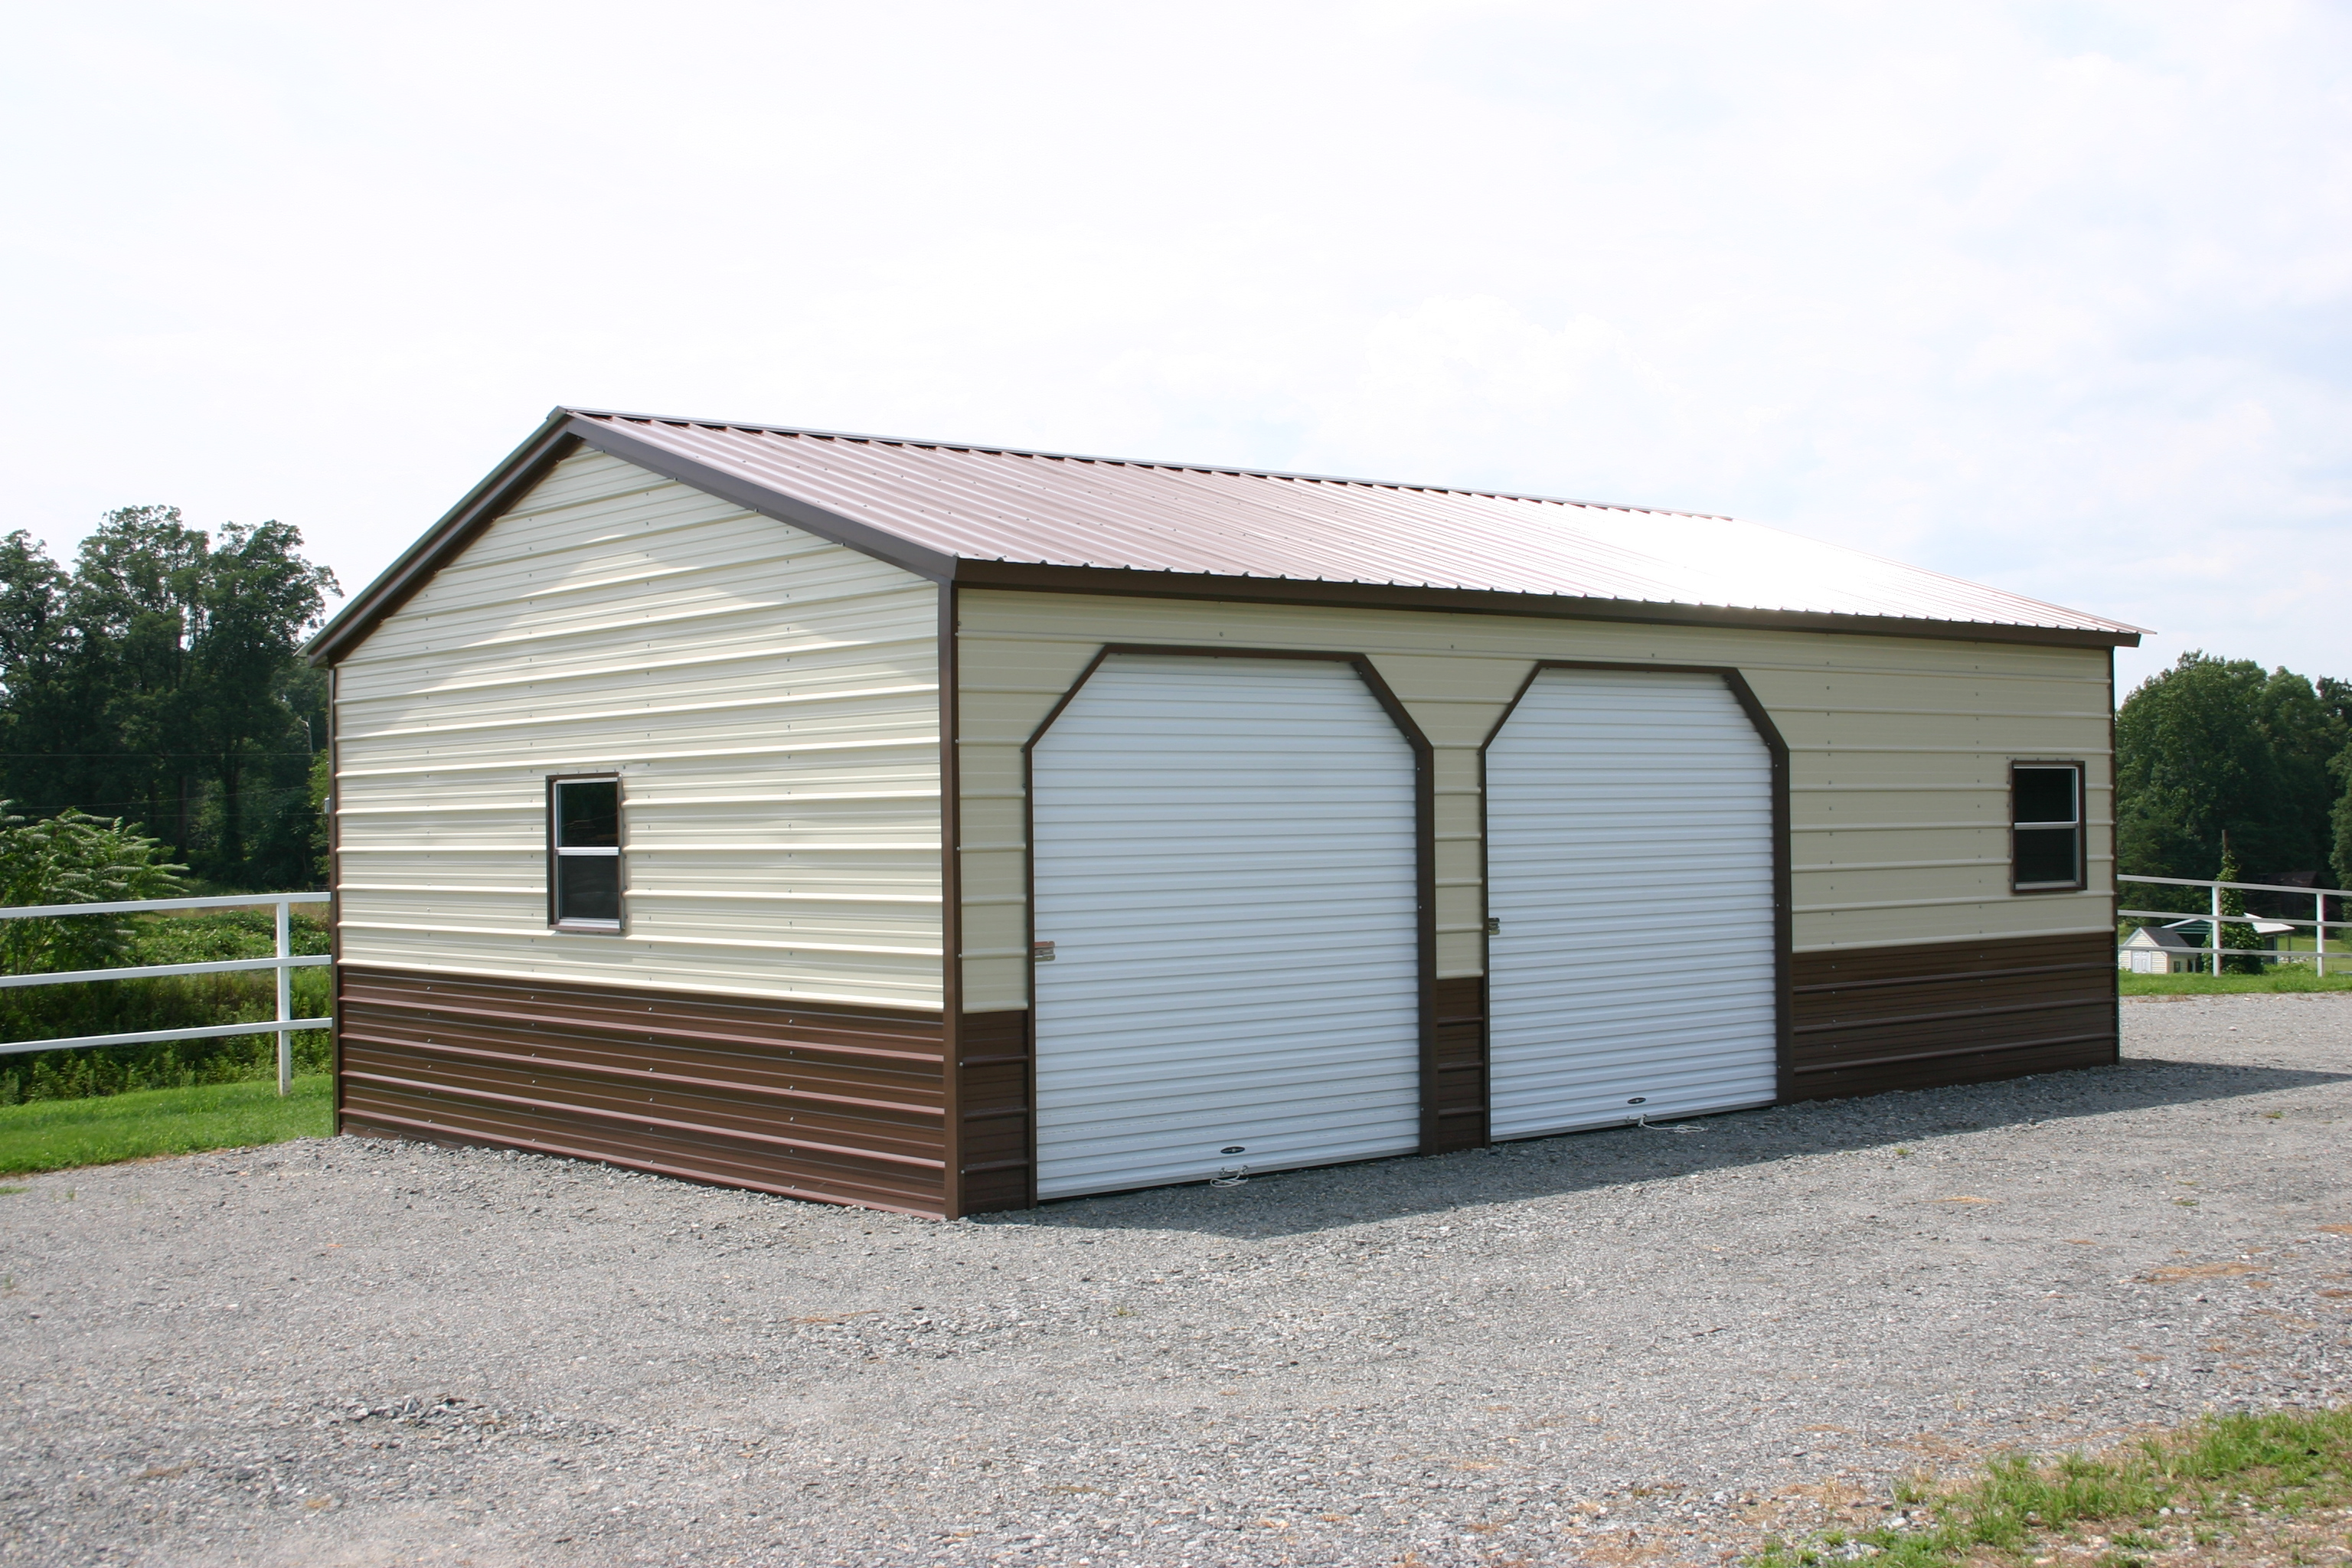 Portable storage buildings sheds carports metal steel garages for Carport garages